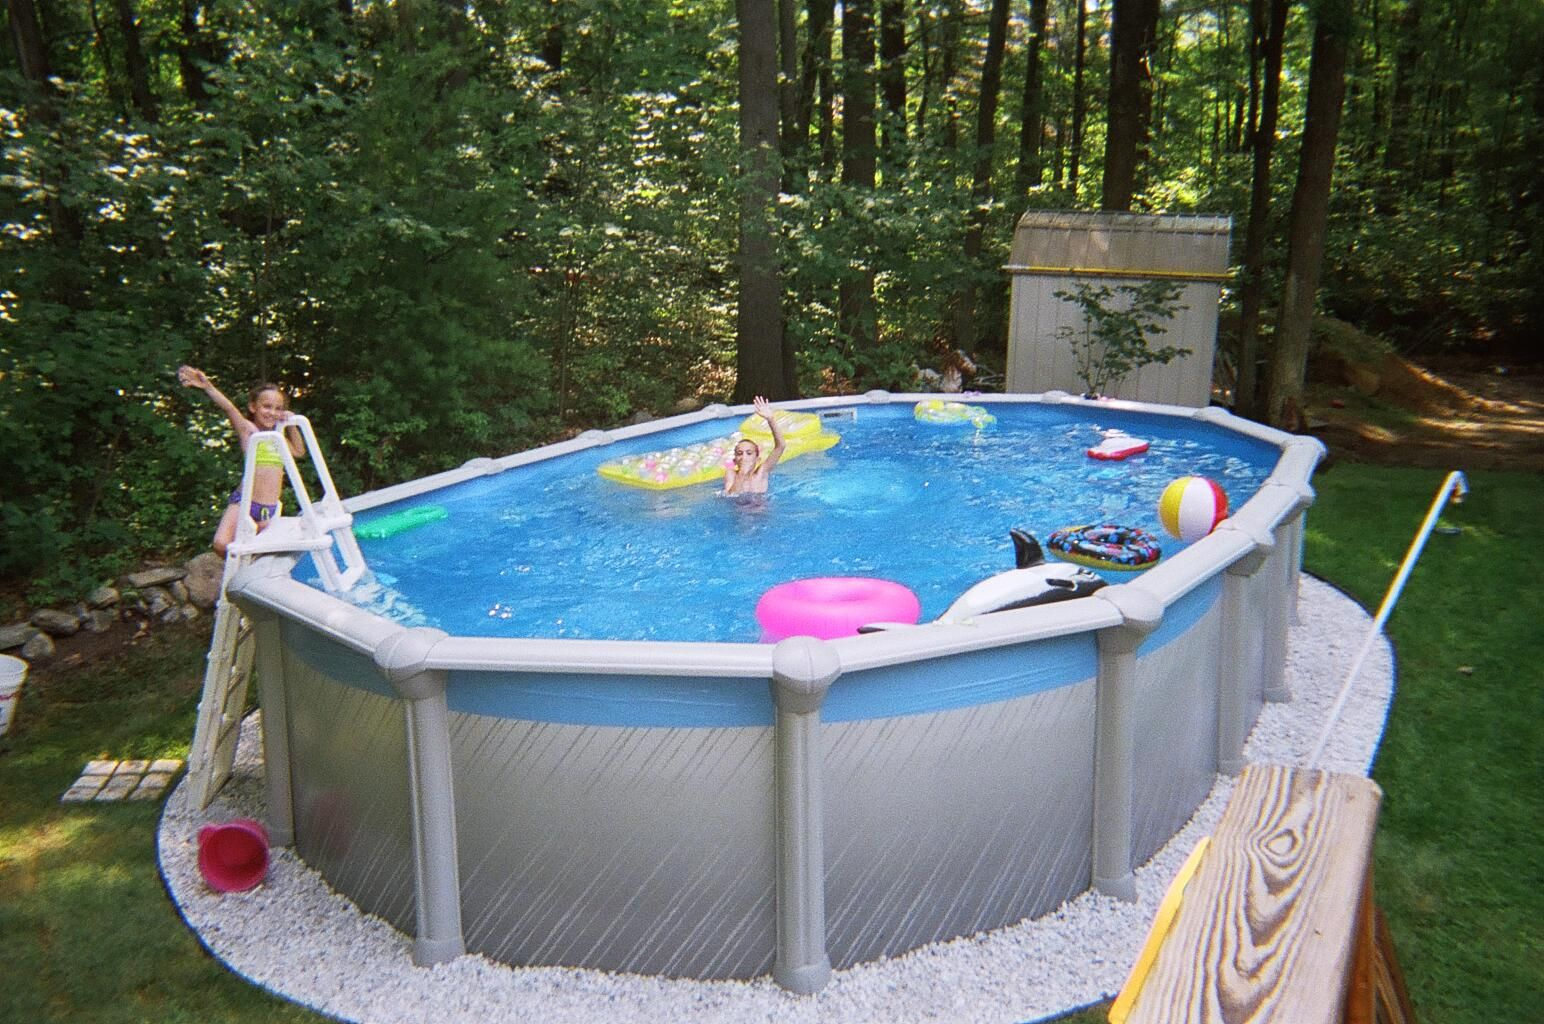 Above Ground Pool Ideas Backyard backyard above ground pool landscaping ideas We Had An Above Ground Pool Like This Which My Mother Bought With